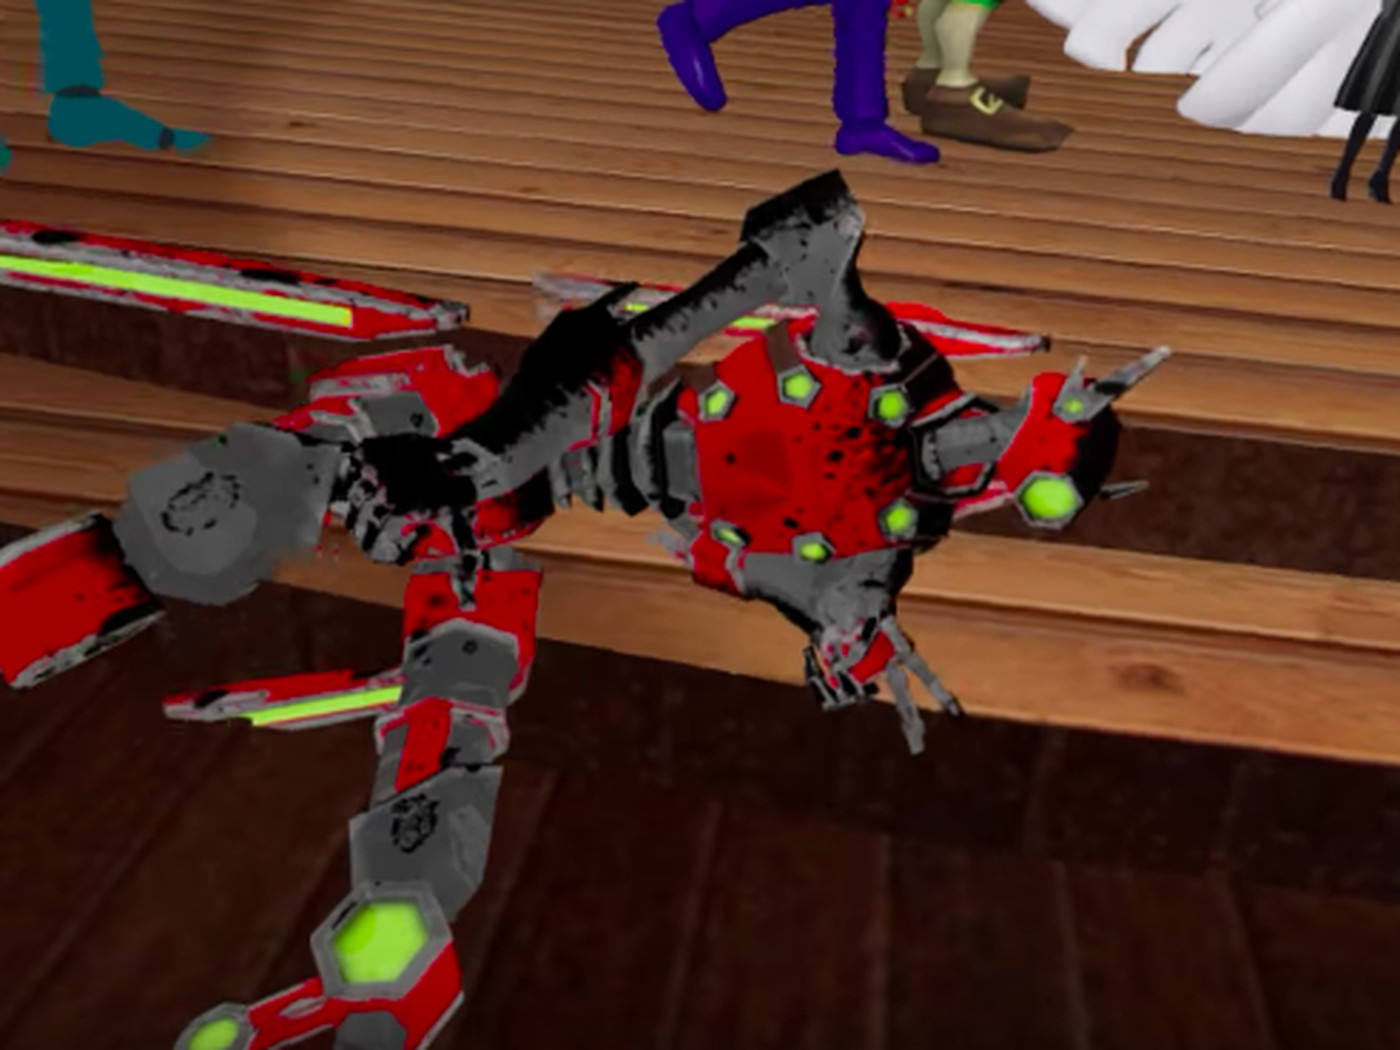 After VRChat player suffers seizure, exec says there are